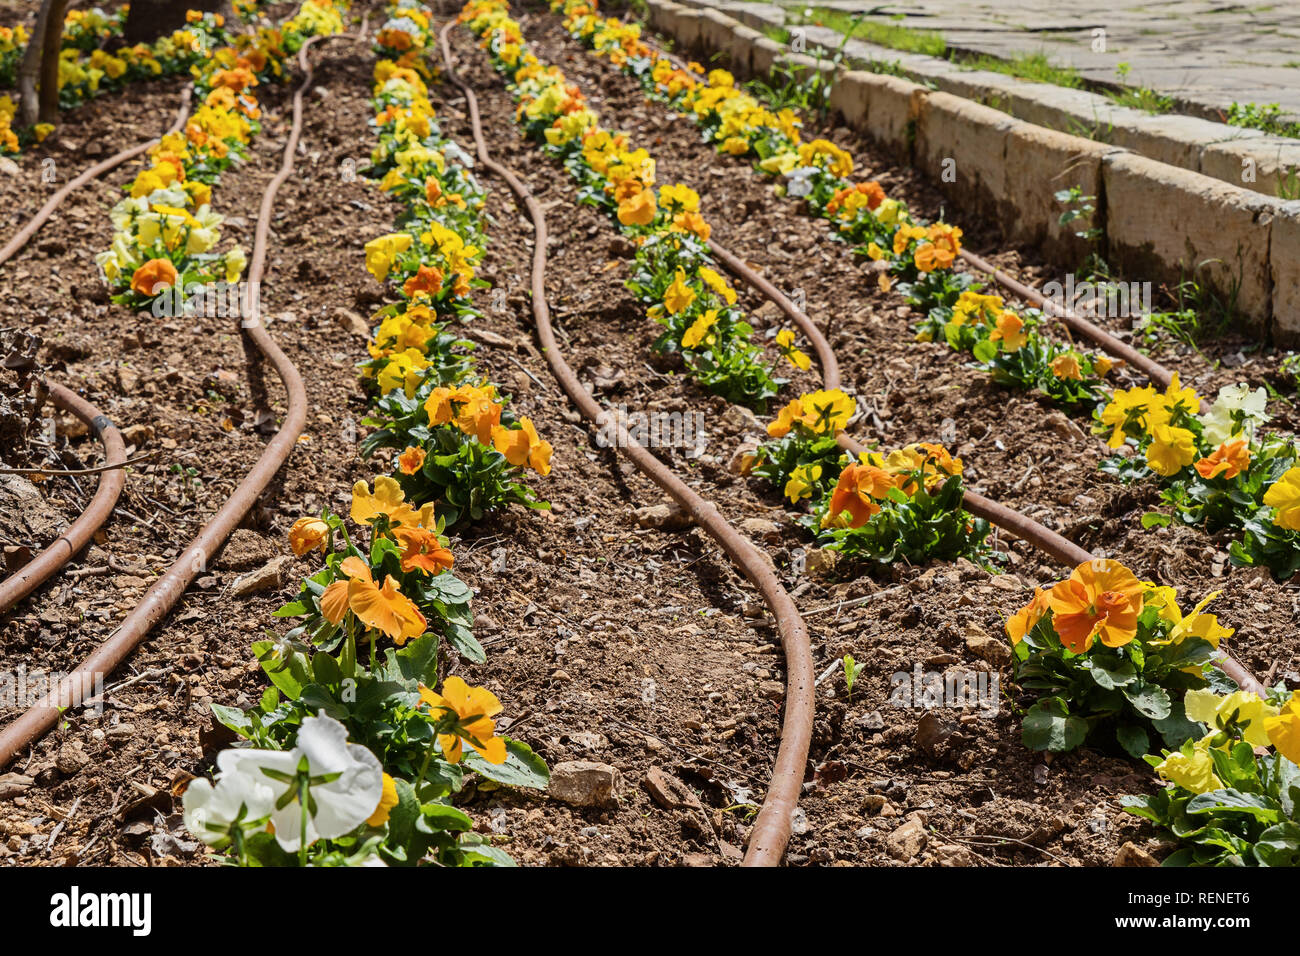 Yellow pansy seedlings and watering system for flowerbed in garden and watering hoses on ground, close up - Stock Image